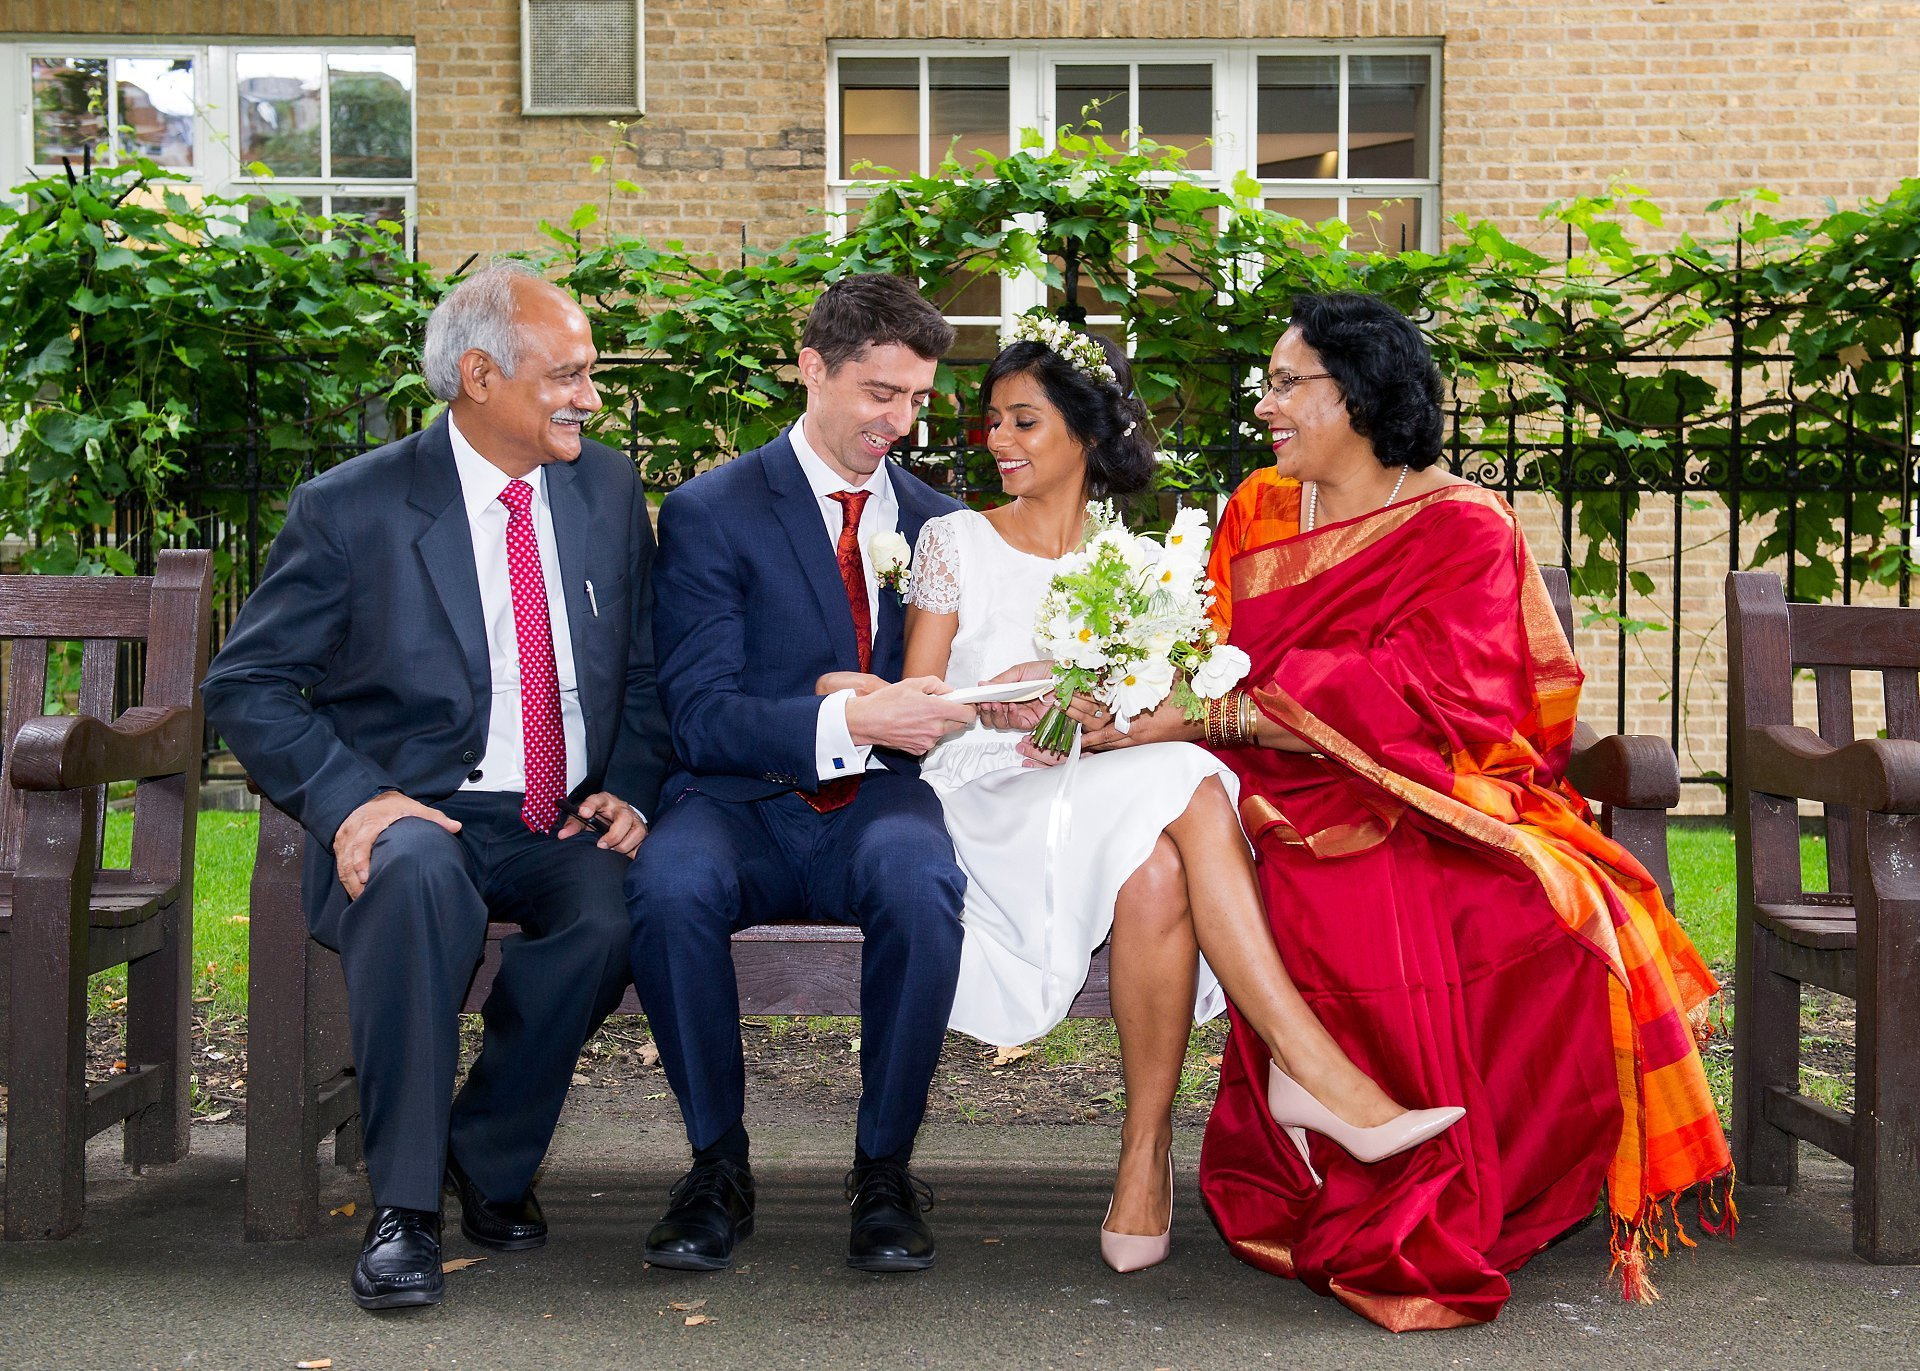 indian wedding photography at westminster register office here the parents gifting their daughter and new son-in-law